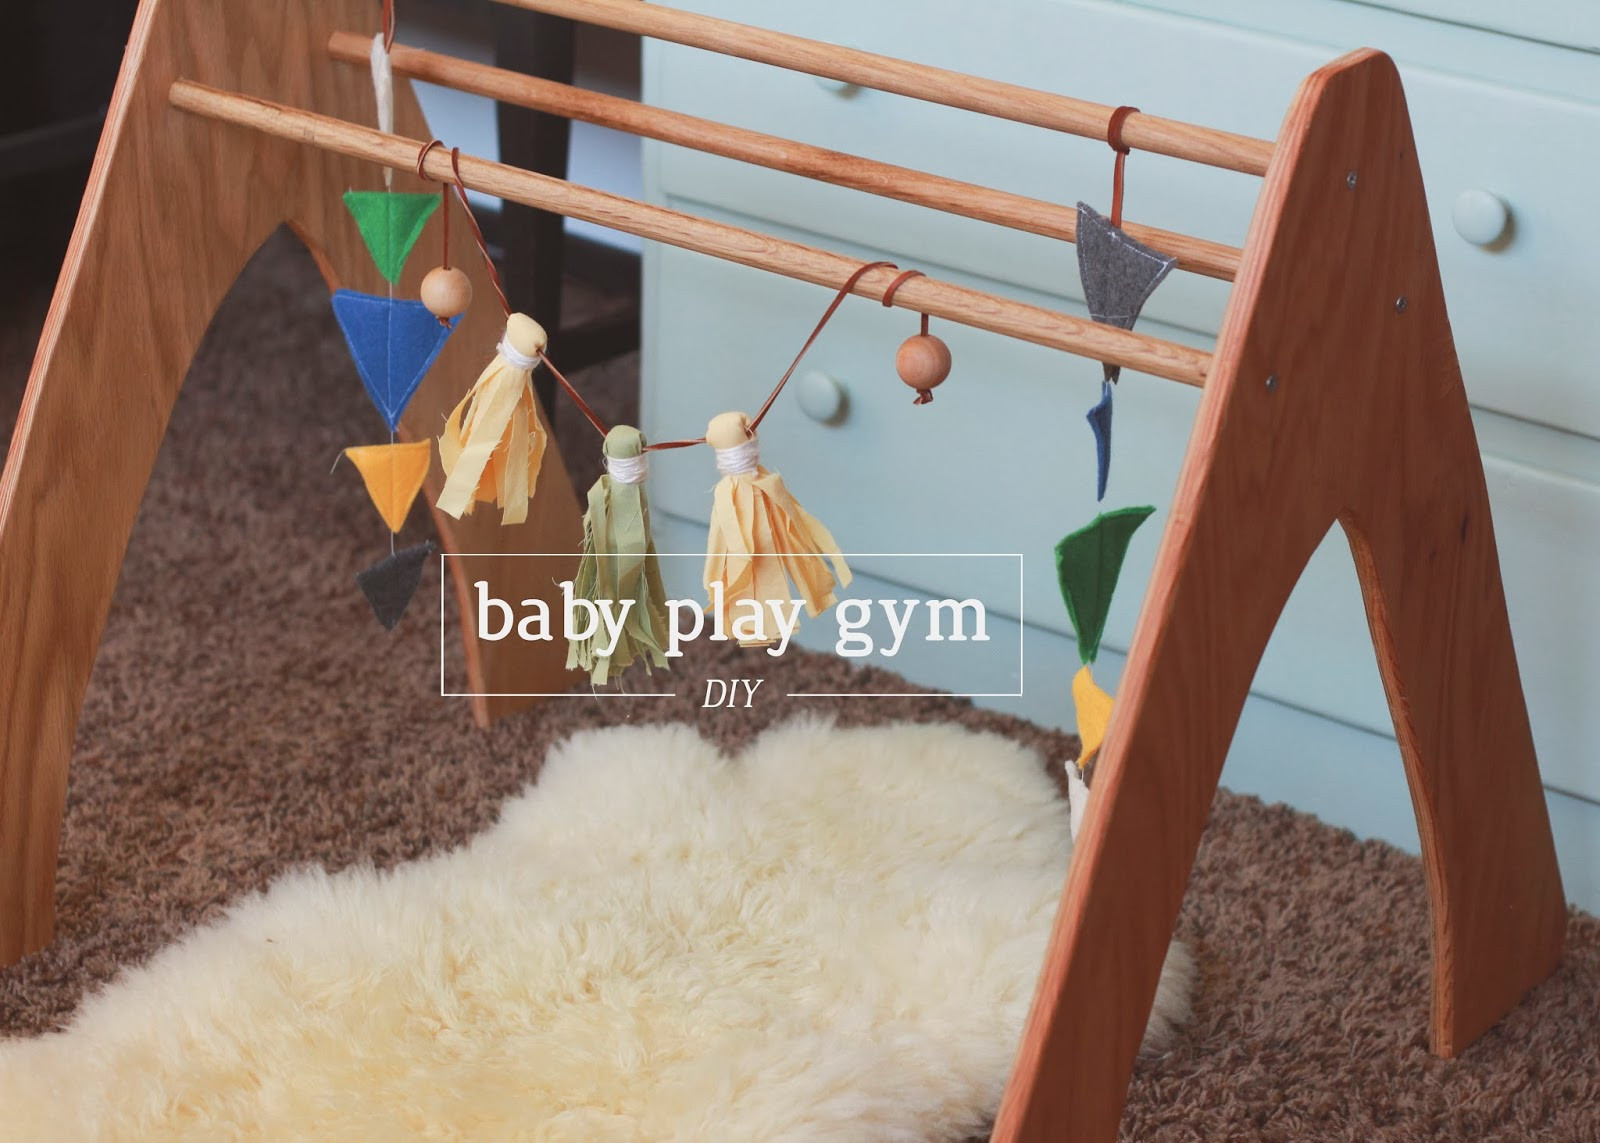 Baby Gym Diy  Nerd and Healthnut DIY Wooden Play Gym